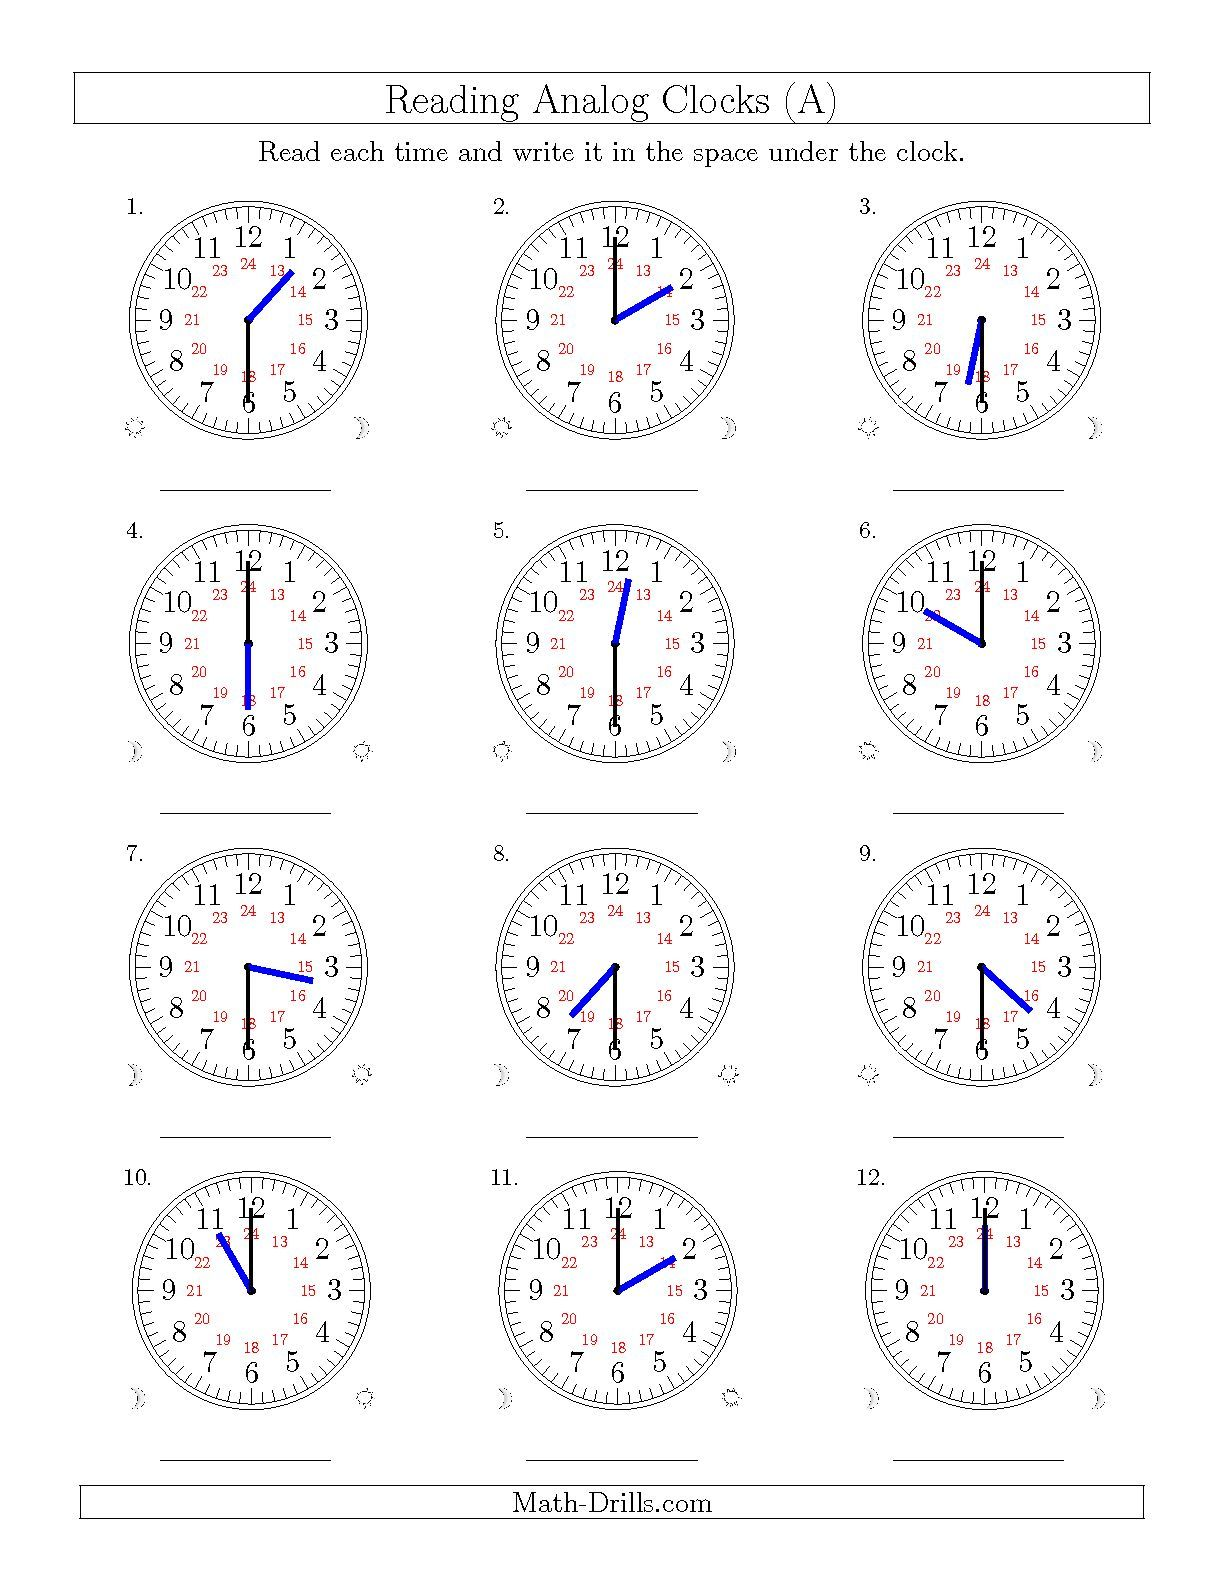 medium resolution of The Reading Time on 24 Hour Analog Clocks in Half Hour Intervals (A)   Clock  worksheets